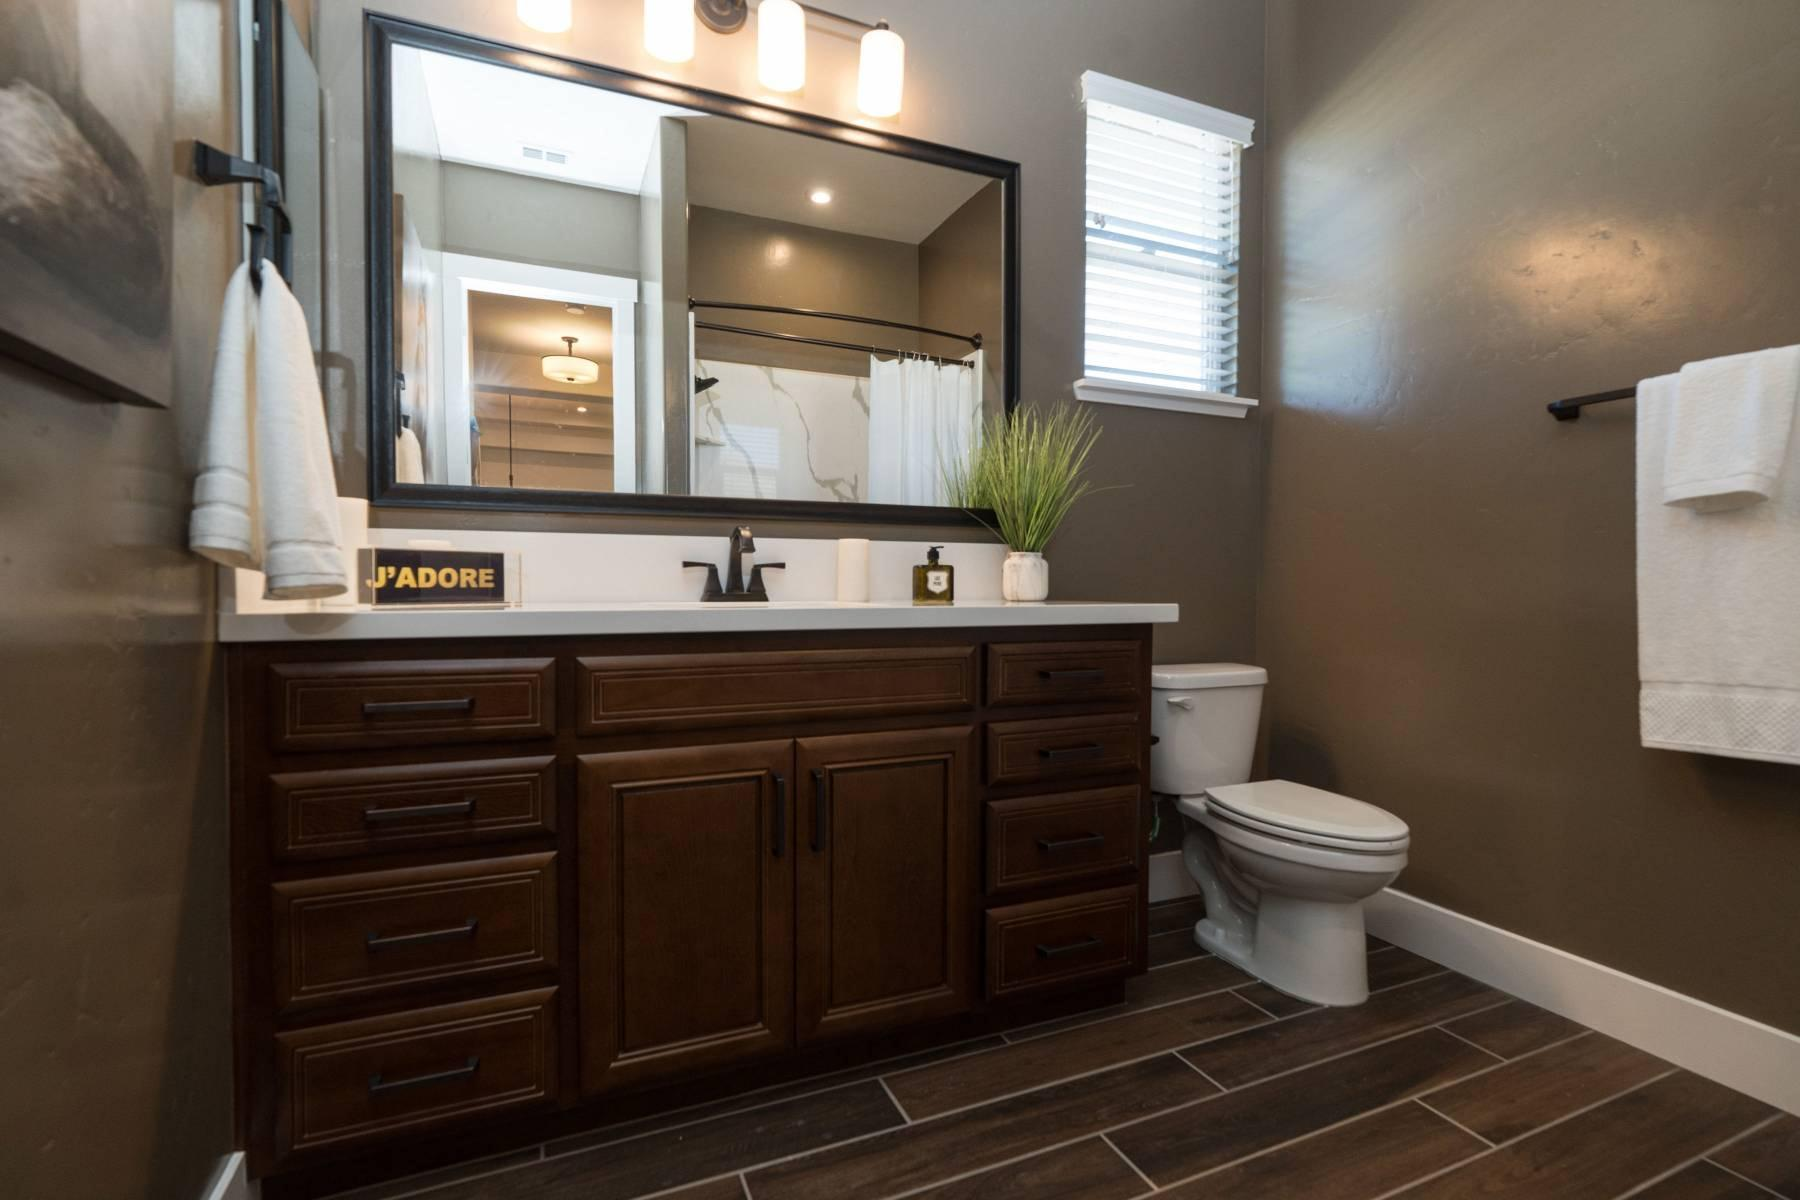 Bathroom featured in the Brome By Elliott Homes in Sacramento, CA